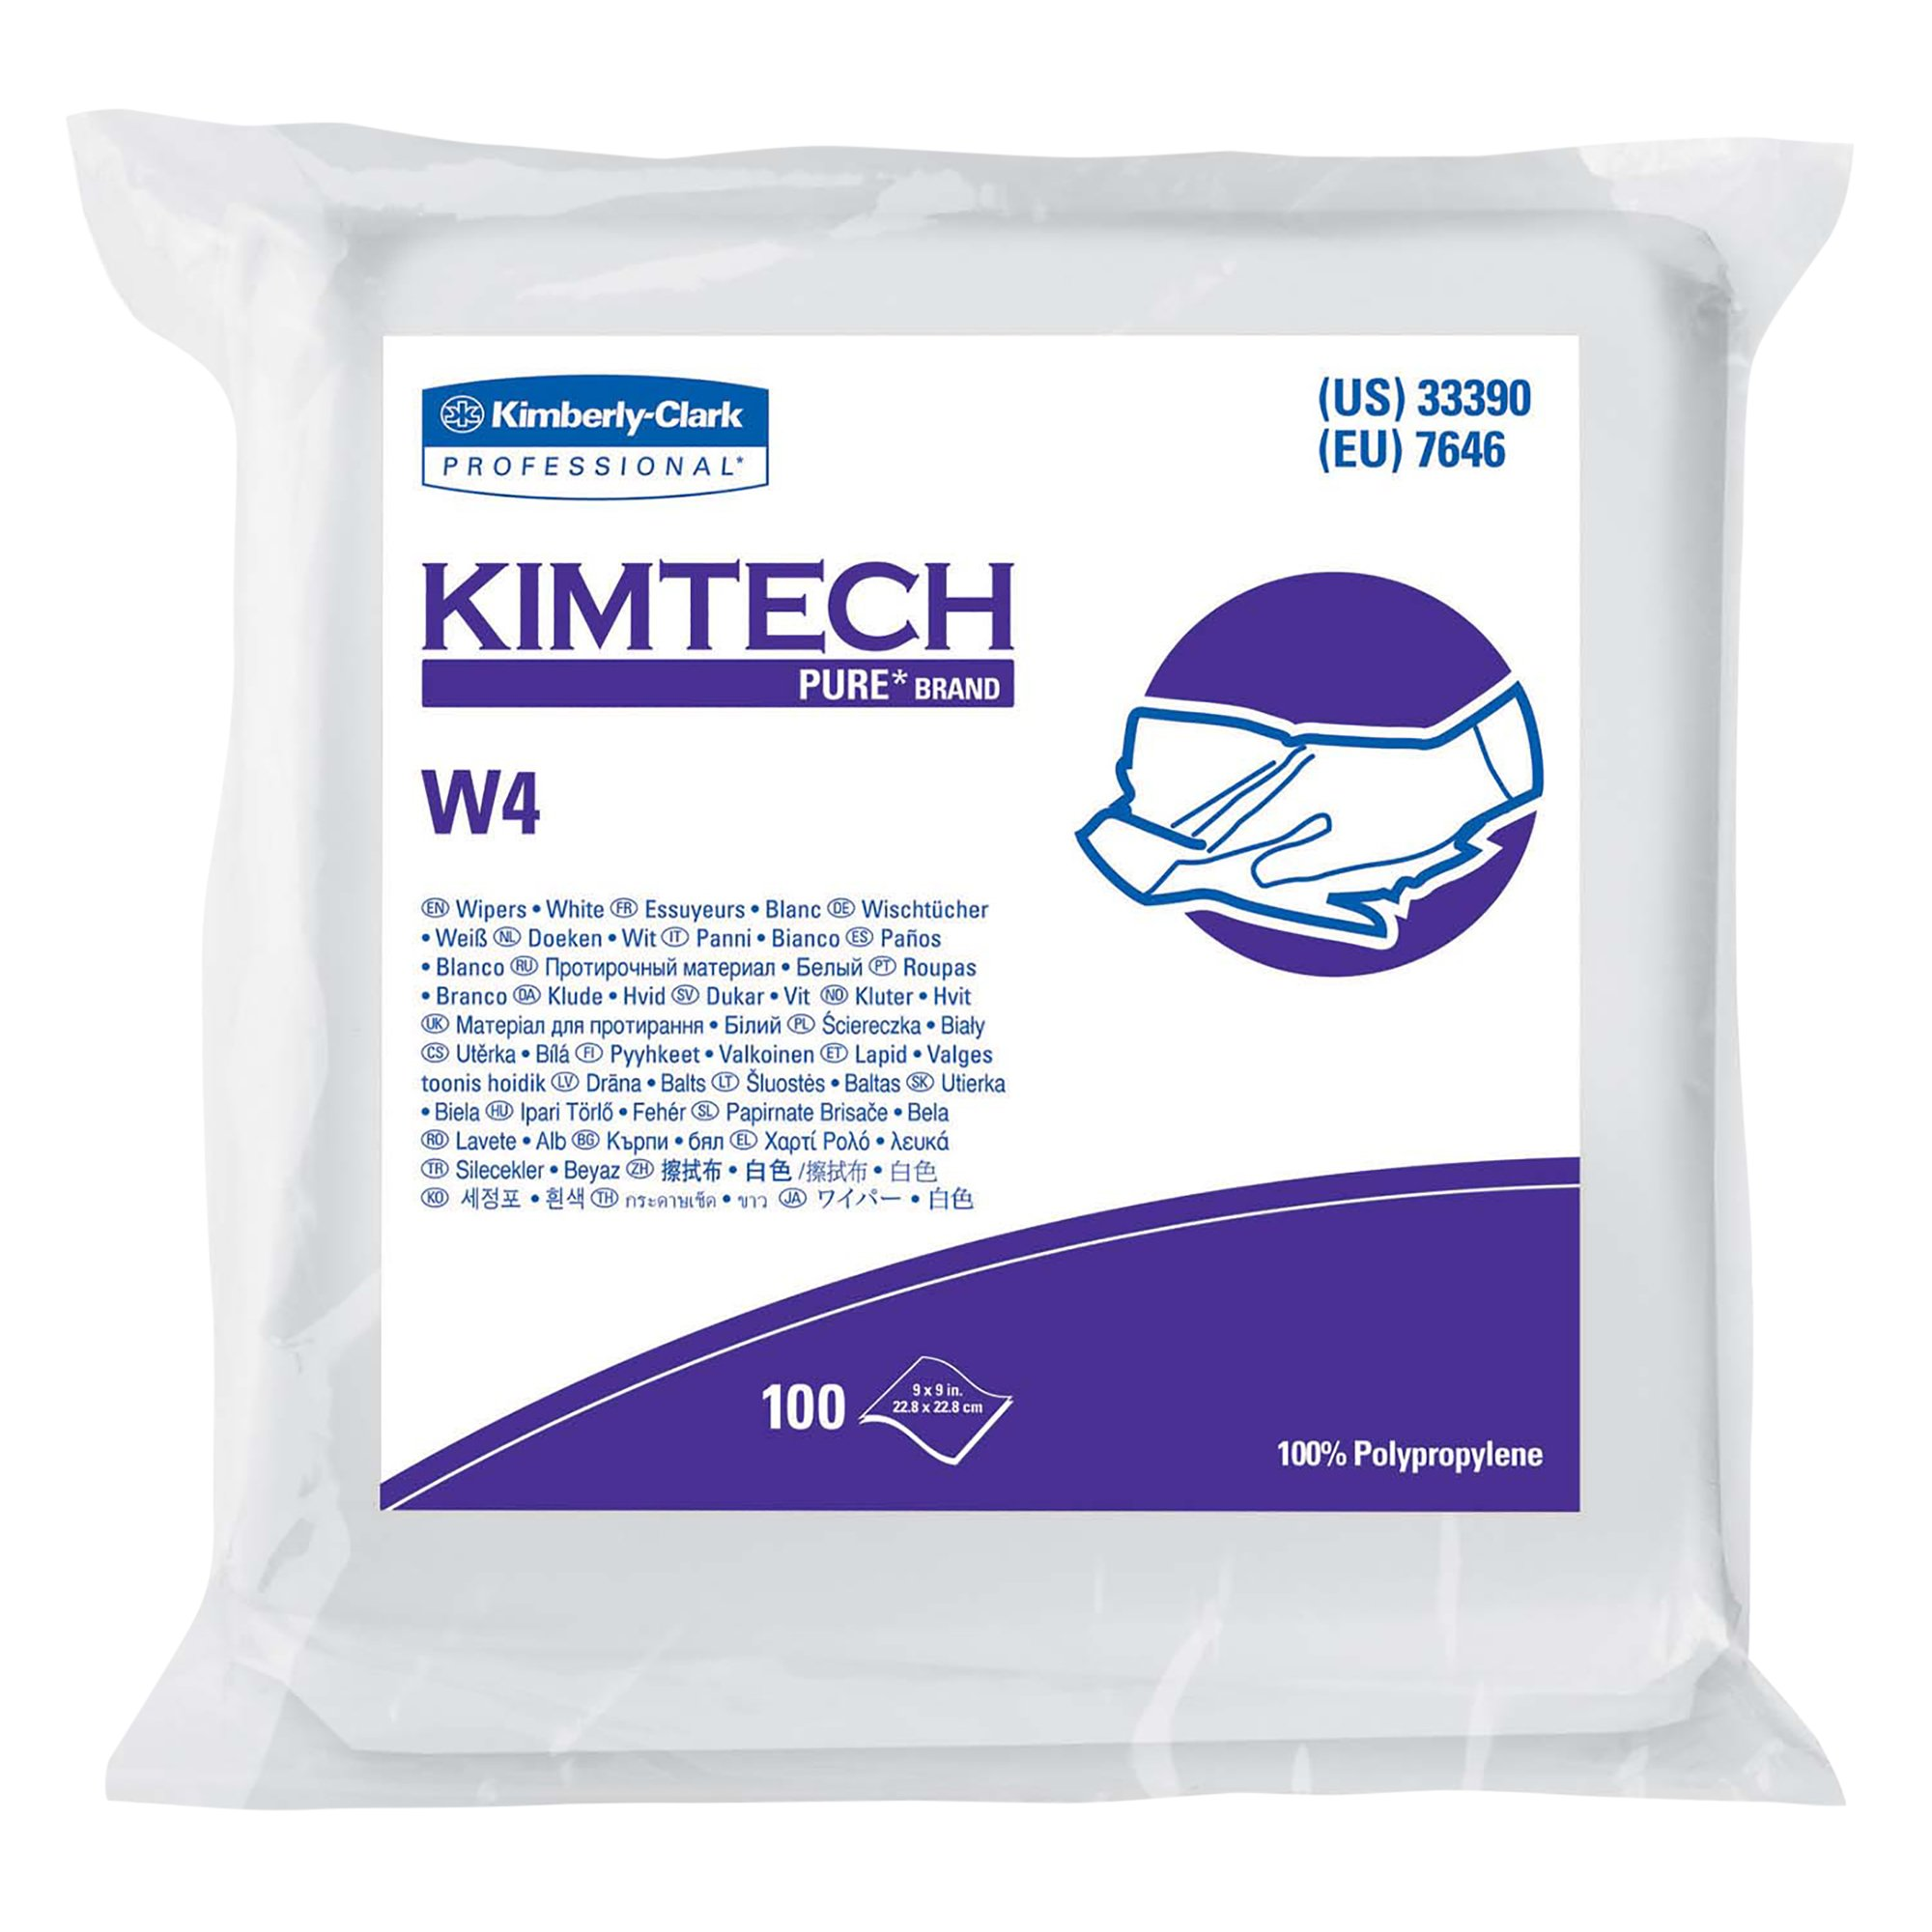 Kimtech Pure W4 Dry Wipers (33390), with Anti-Stat Resealable Double-Bag Pouch, 9'' x 9'', White, 500 Wipes / Case, 5 Packs of 100 Wipes by Kimberly-Clark Professional